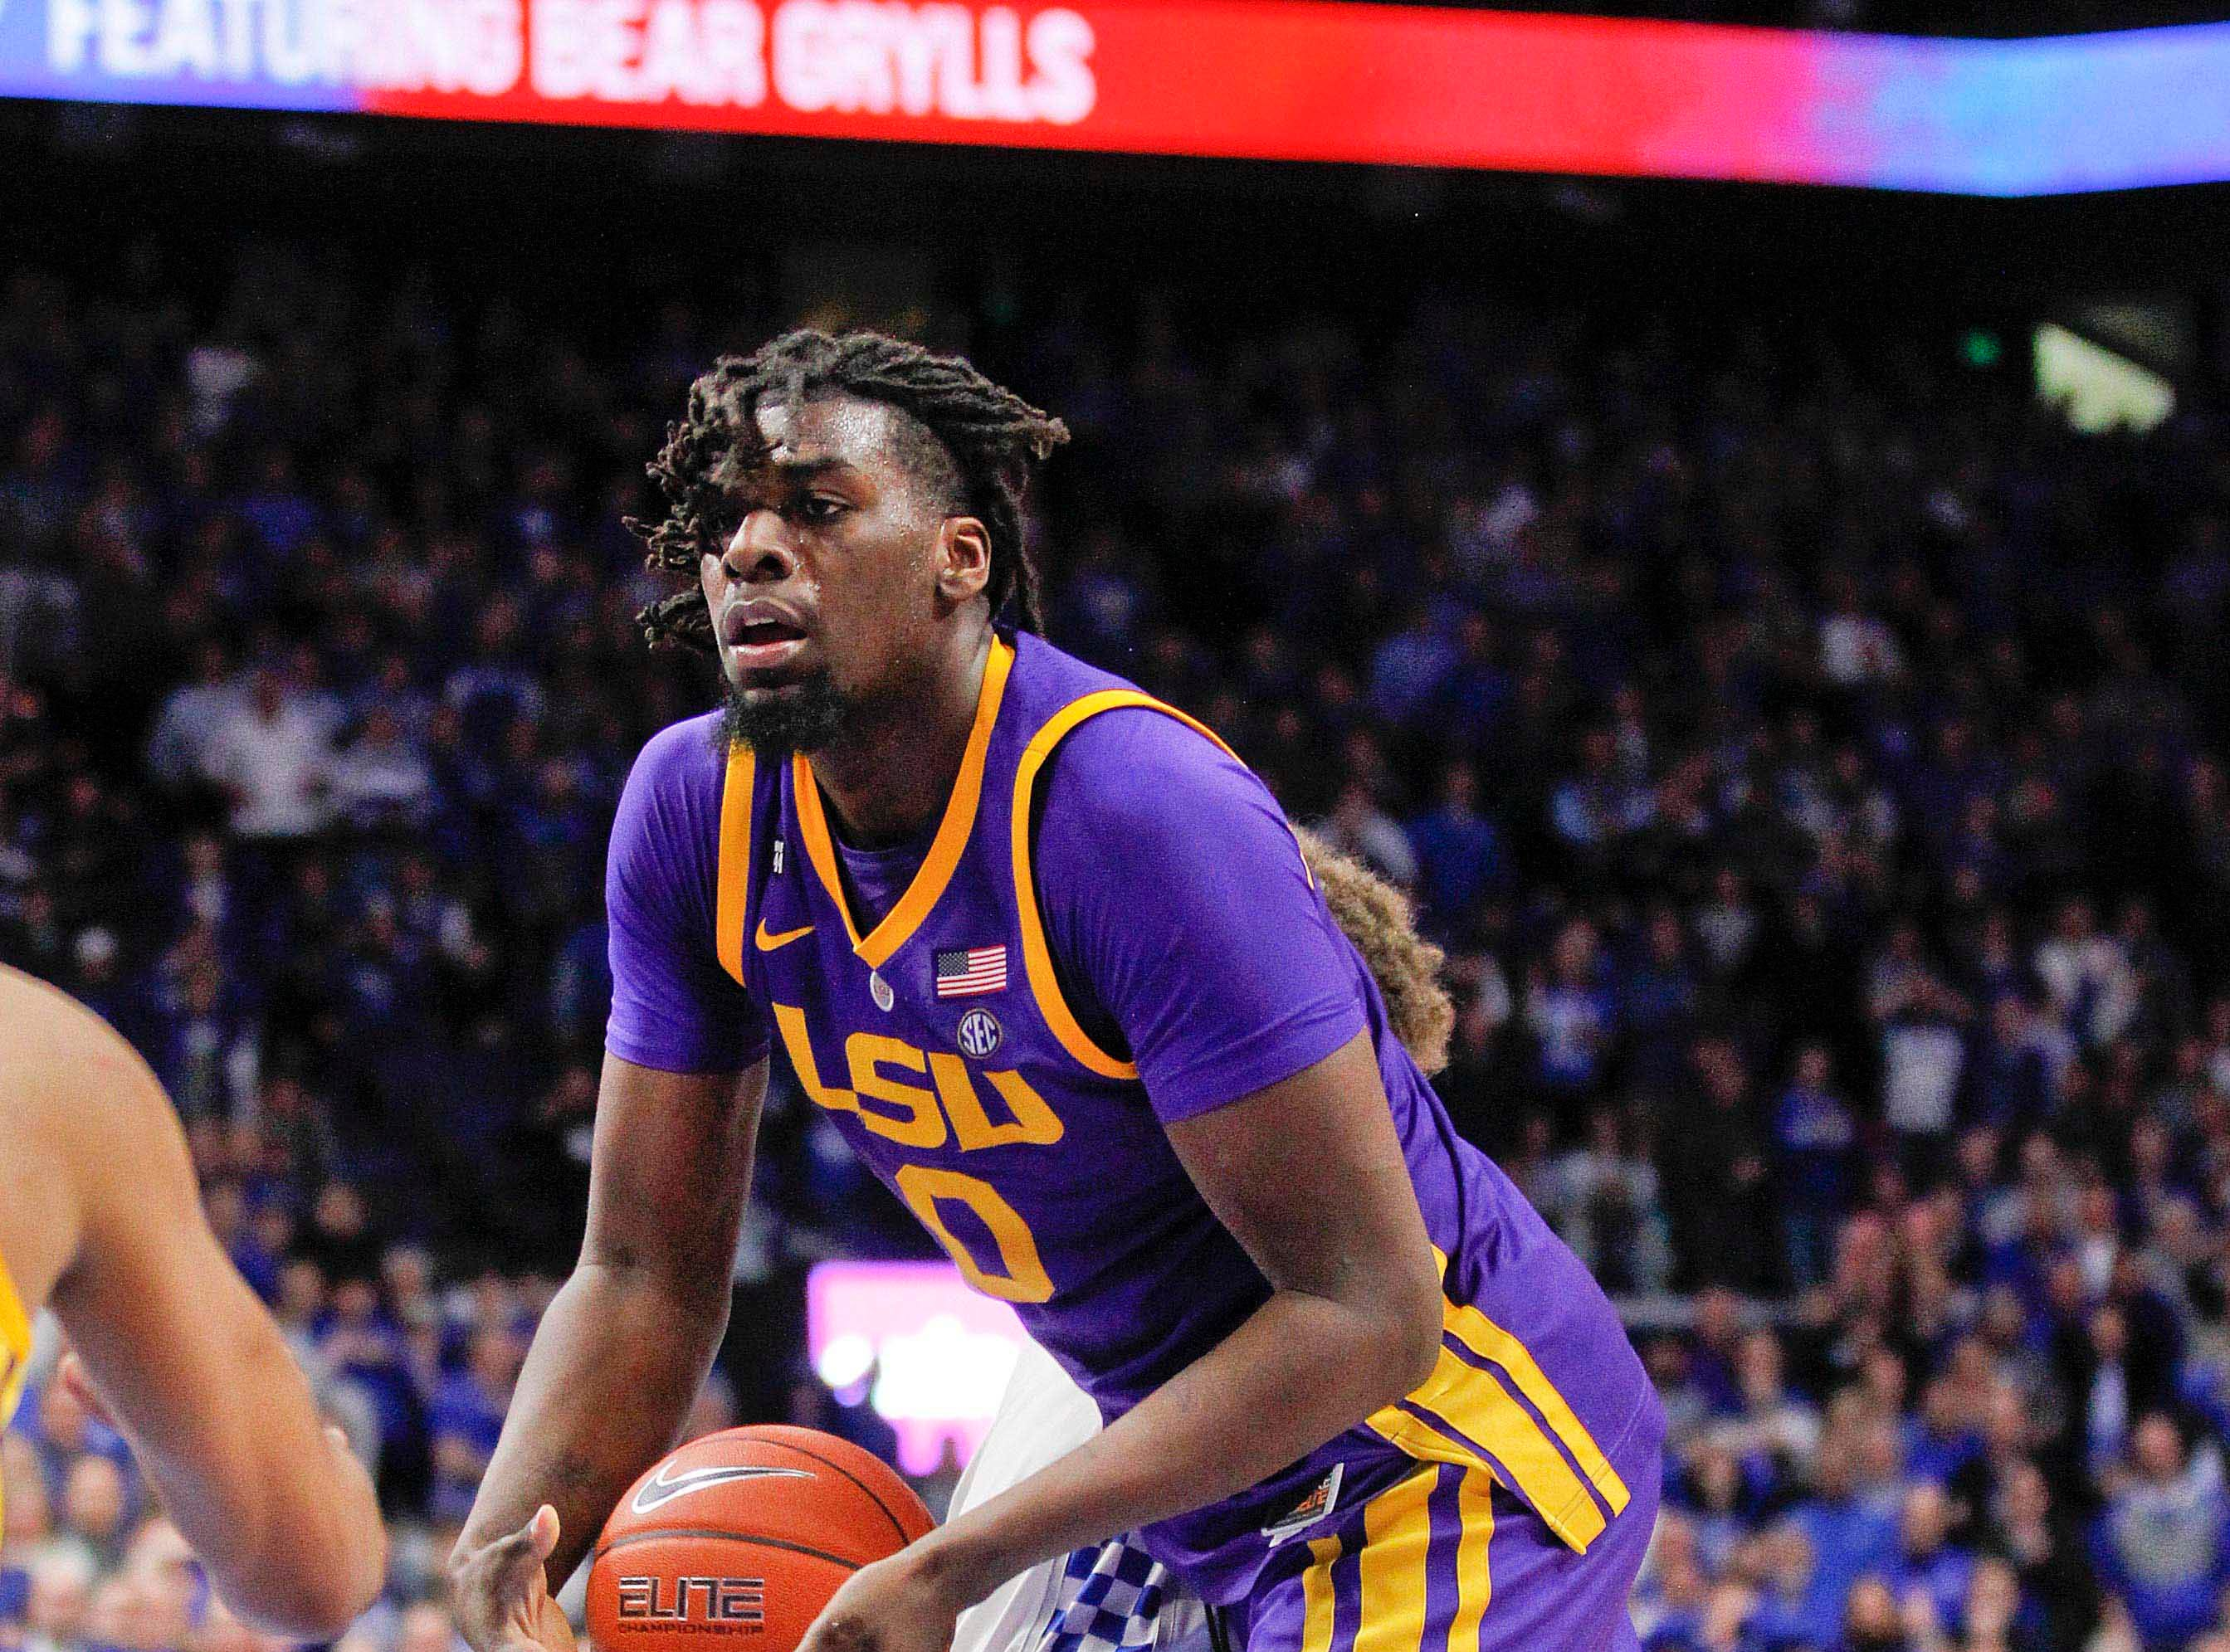 Feb 12, 2019; Lexington, KY, USA; LSU Tigers forward Naz Reid (00) rebounds the ball against the Kentucky Wildcats in the second half at Rupp Arena. Mandatory Credit: Mark Zerof-USA TODAY Sports